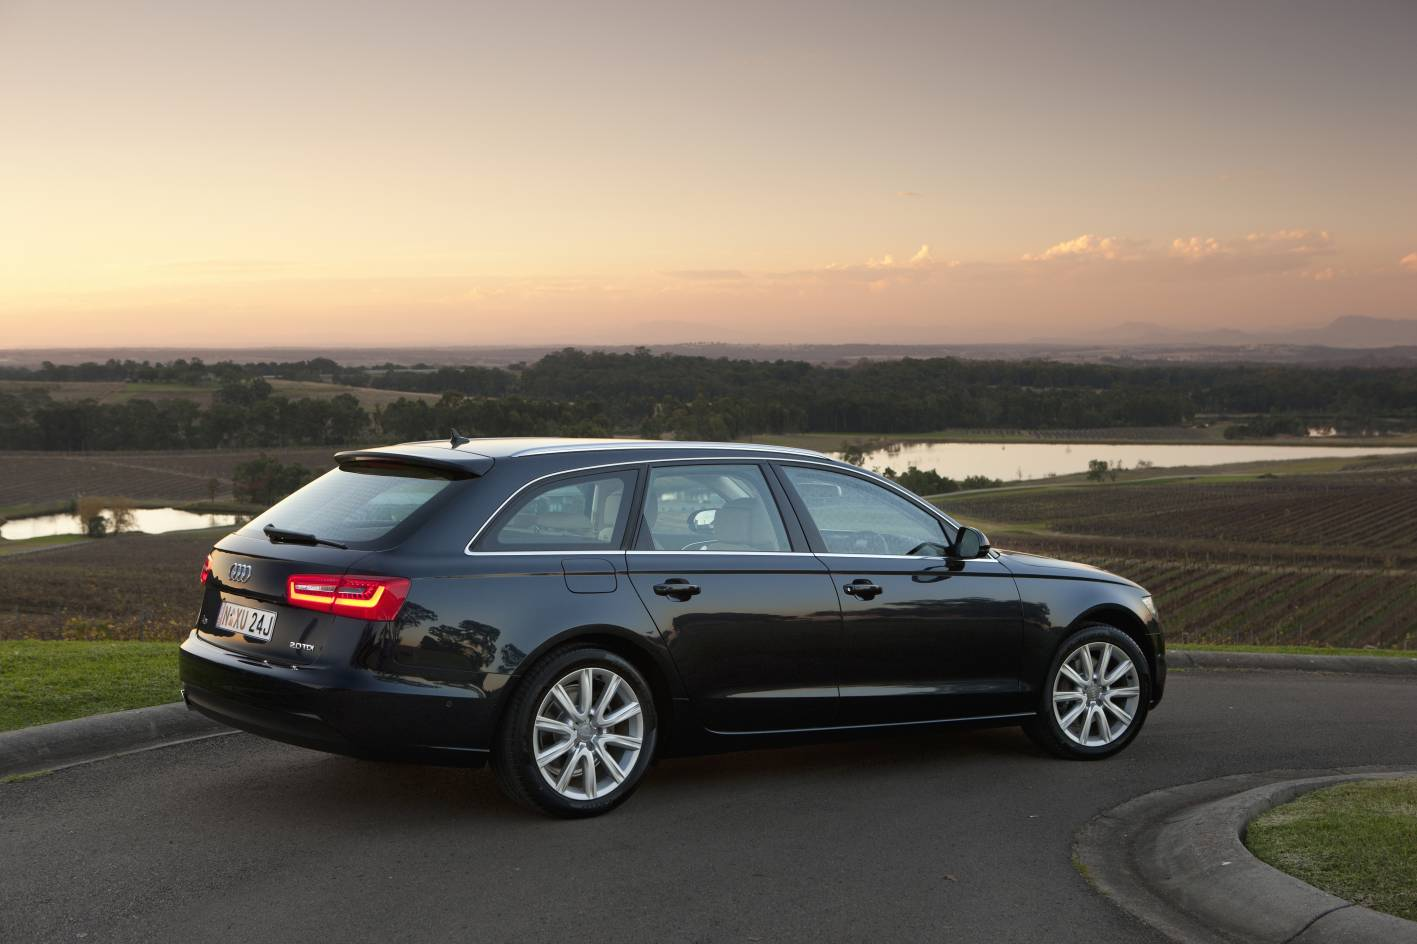 2013 Audi A6 Avant Launched In Australia Forcegt Com